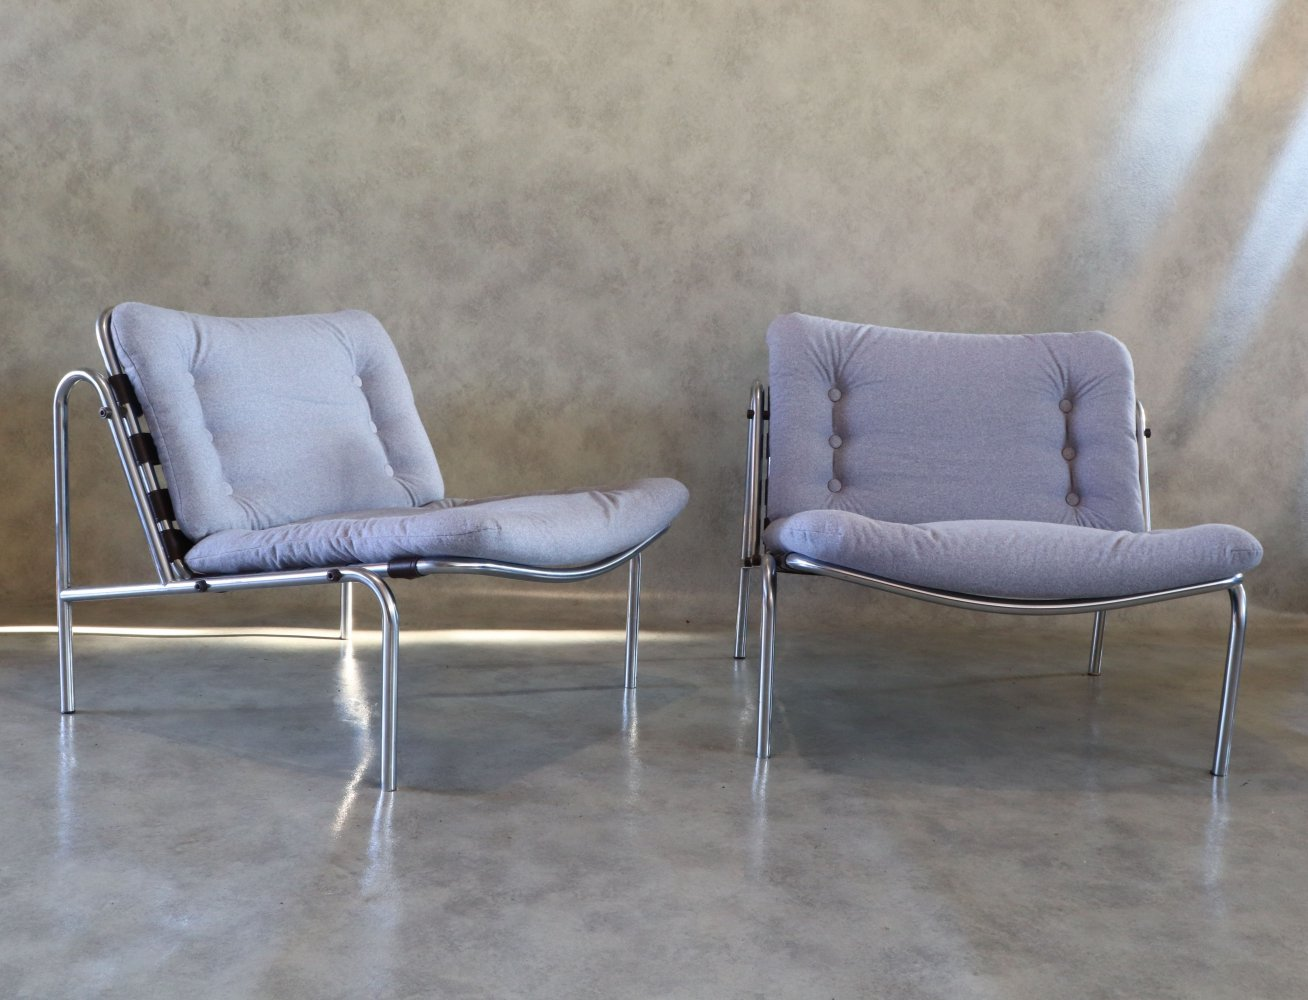 Pair of Kyoto Armchairs by Martin Visser for